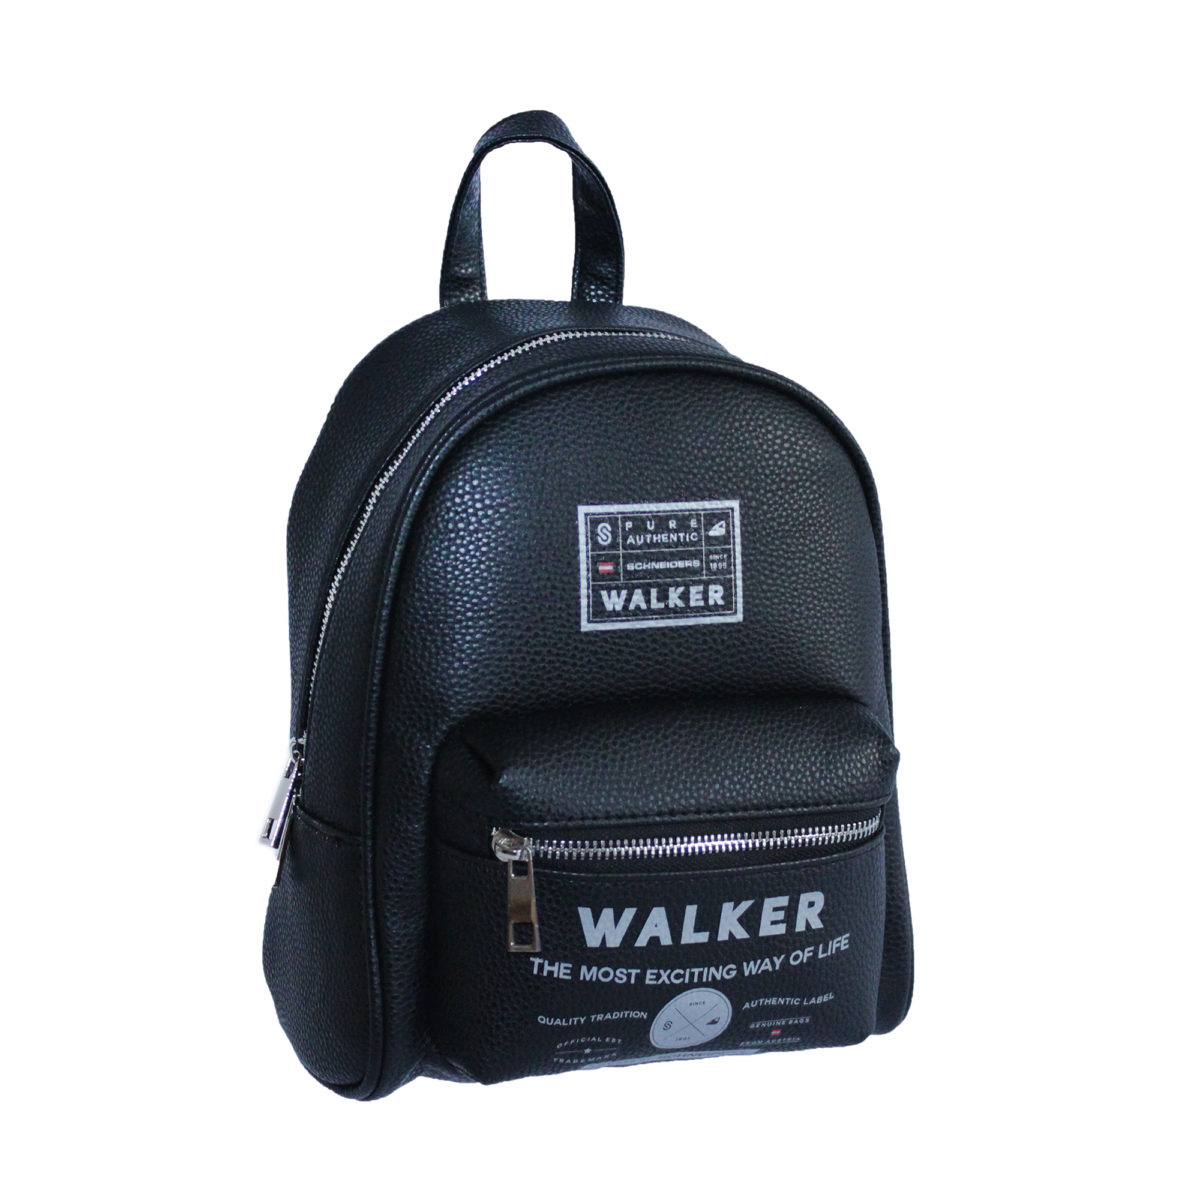 https://walker-bags.com/wp-content/uploads/2020/06/2000-x-2000-8.jpg